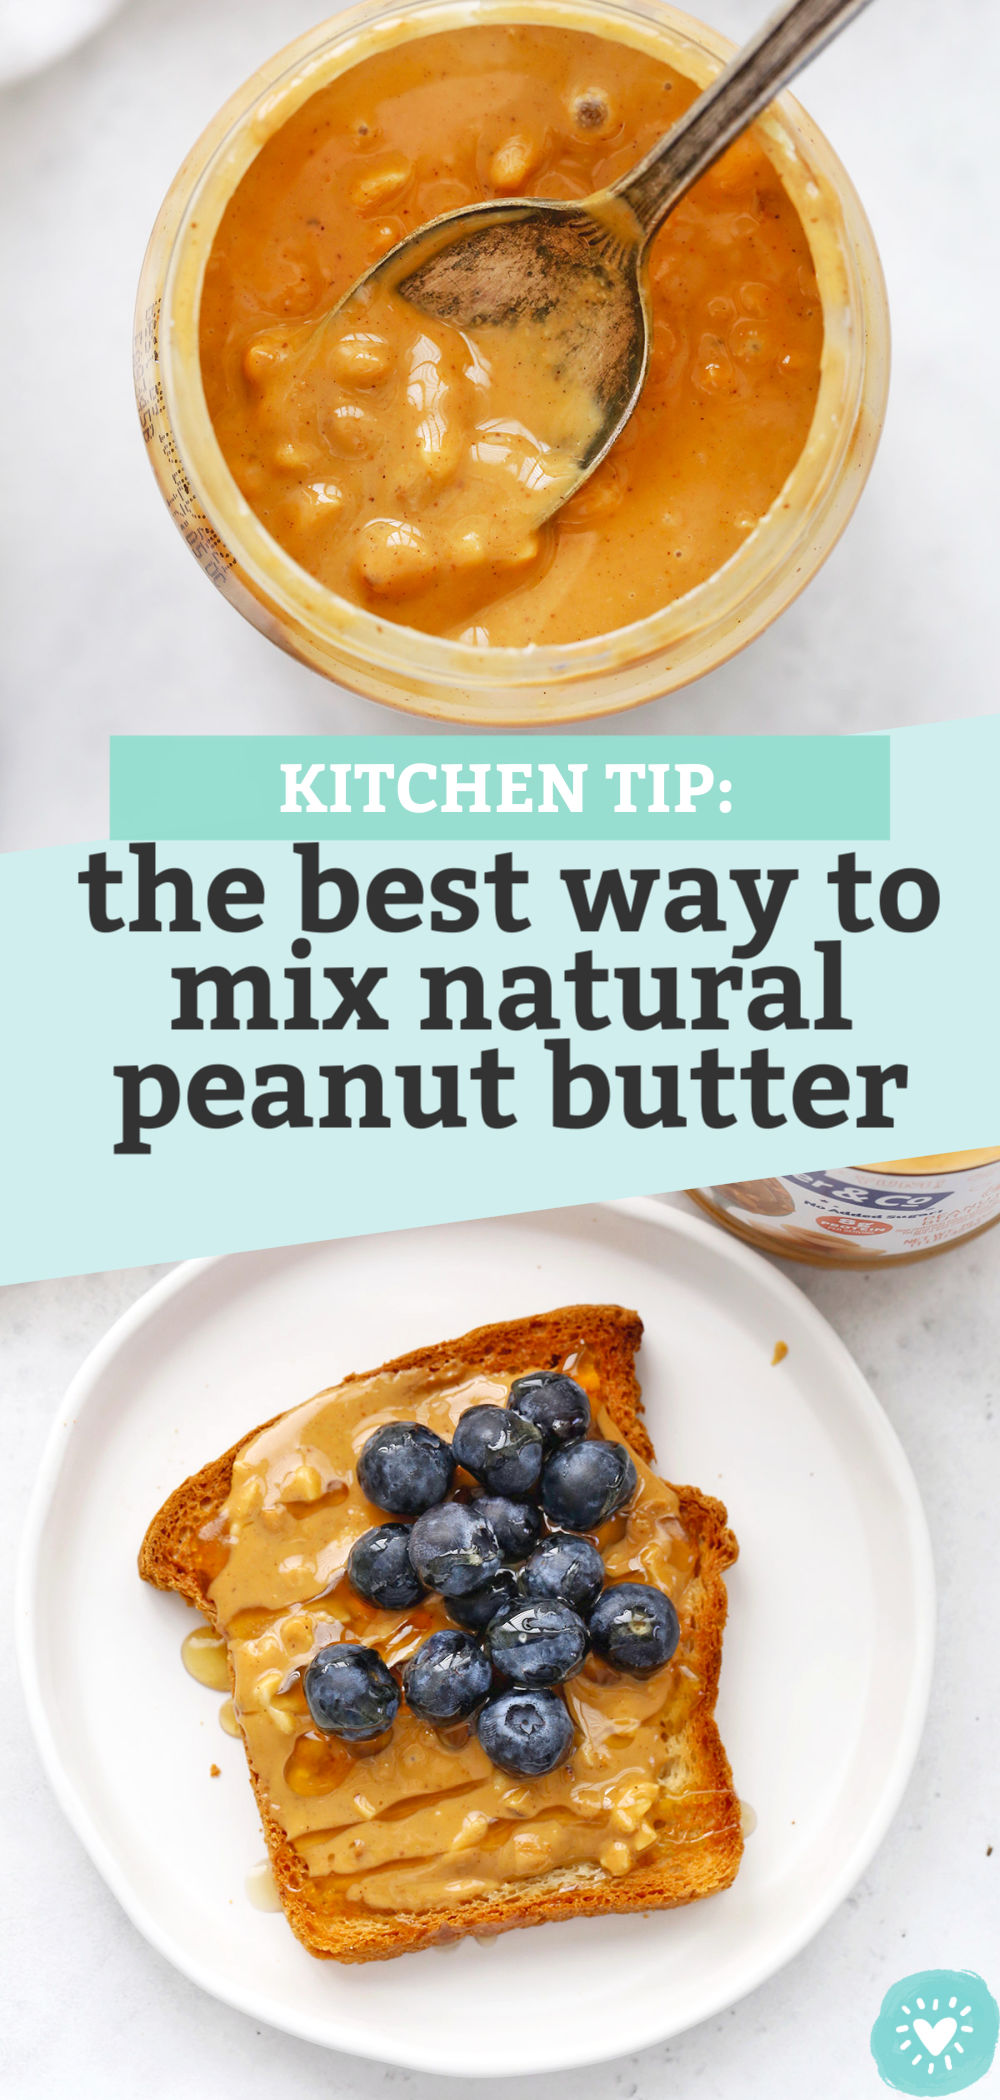 The Best Way to Mix Natural Peanut Butter